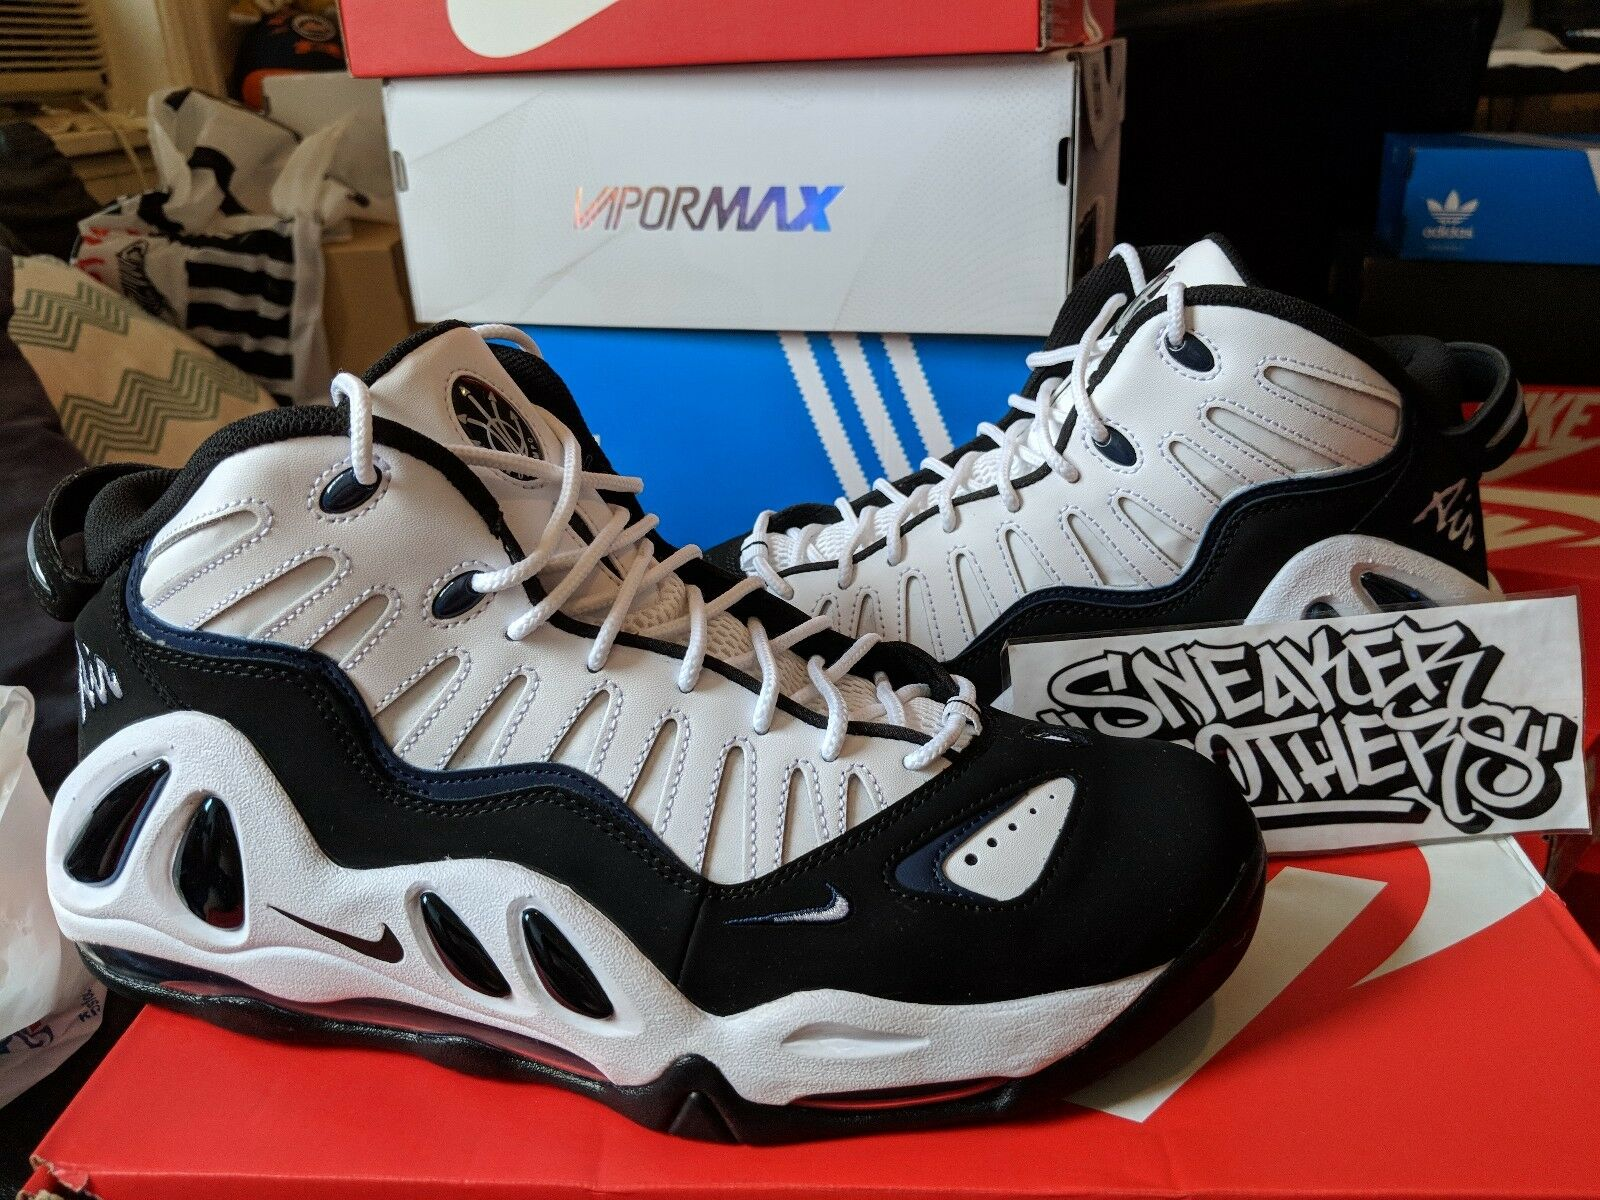 online retailer 02b2f fc1ab Nike Air Max Uptempo Uptempo Uptempo 97 College Navy Blanco Pippen  Basketball Hombre 399207-101